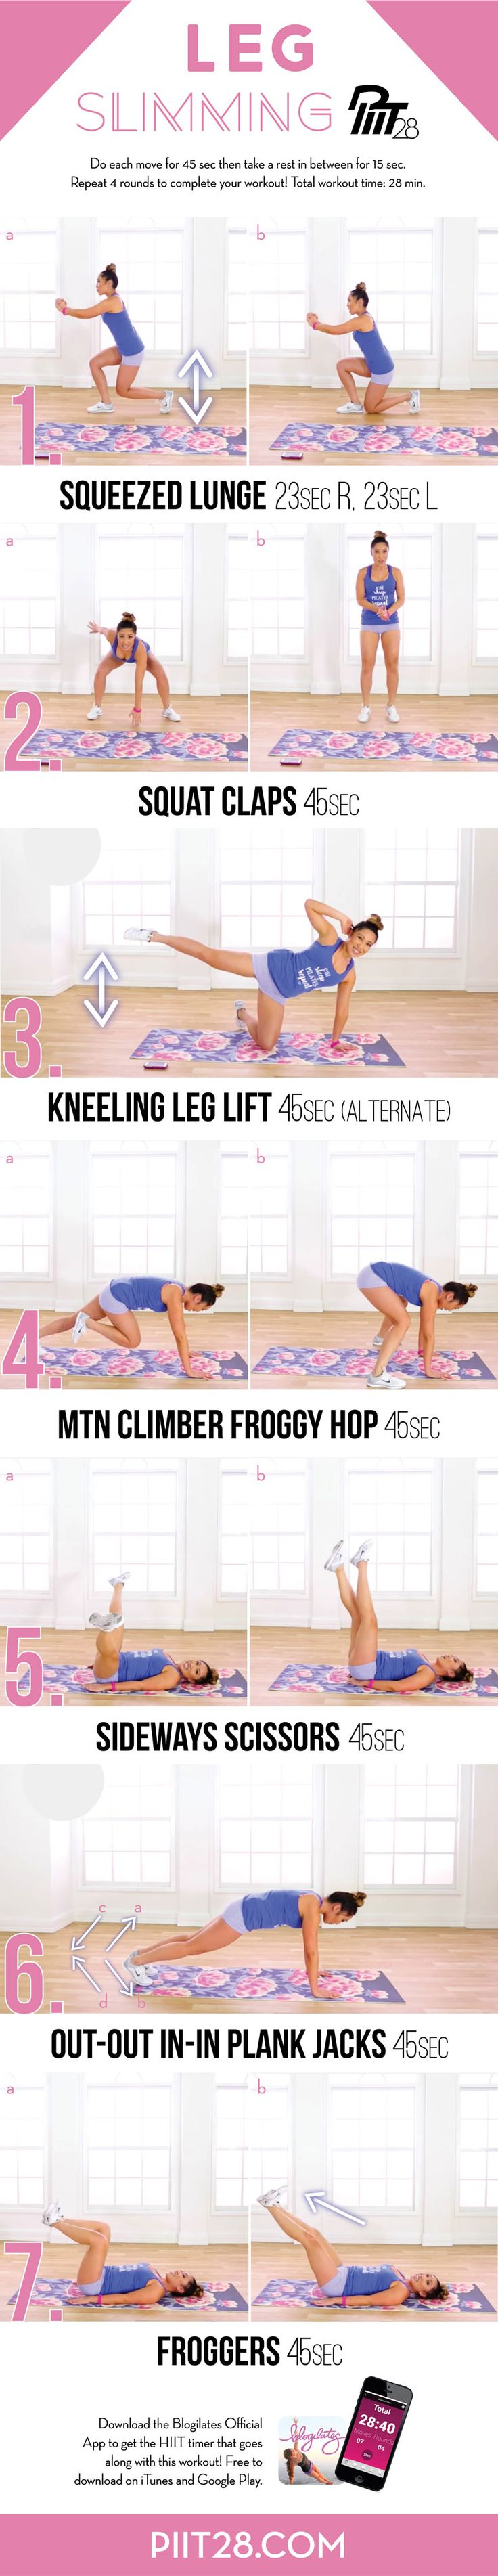 Hey guys! Enjoy this free PIIT28 Leg Slimming sequence! A mixture Pilates for muscle toning and HIIT (high intensity interval training) to burn fat – PIIT28 is the the BEST workout for getting fit QUI